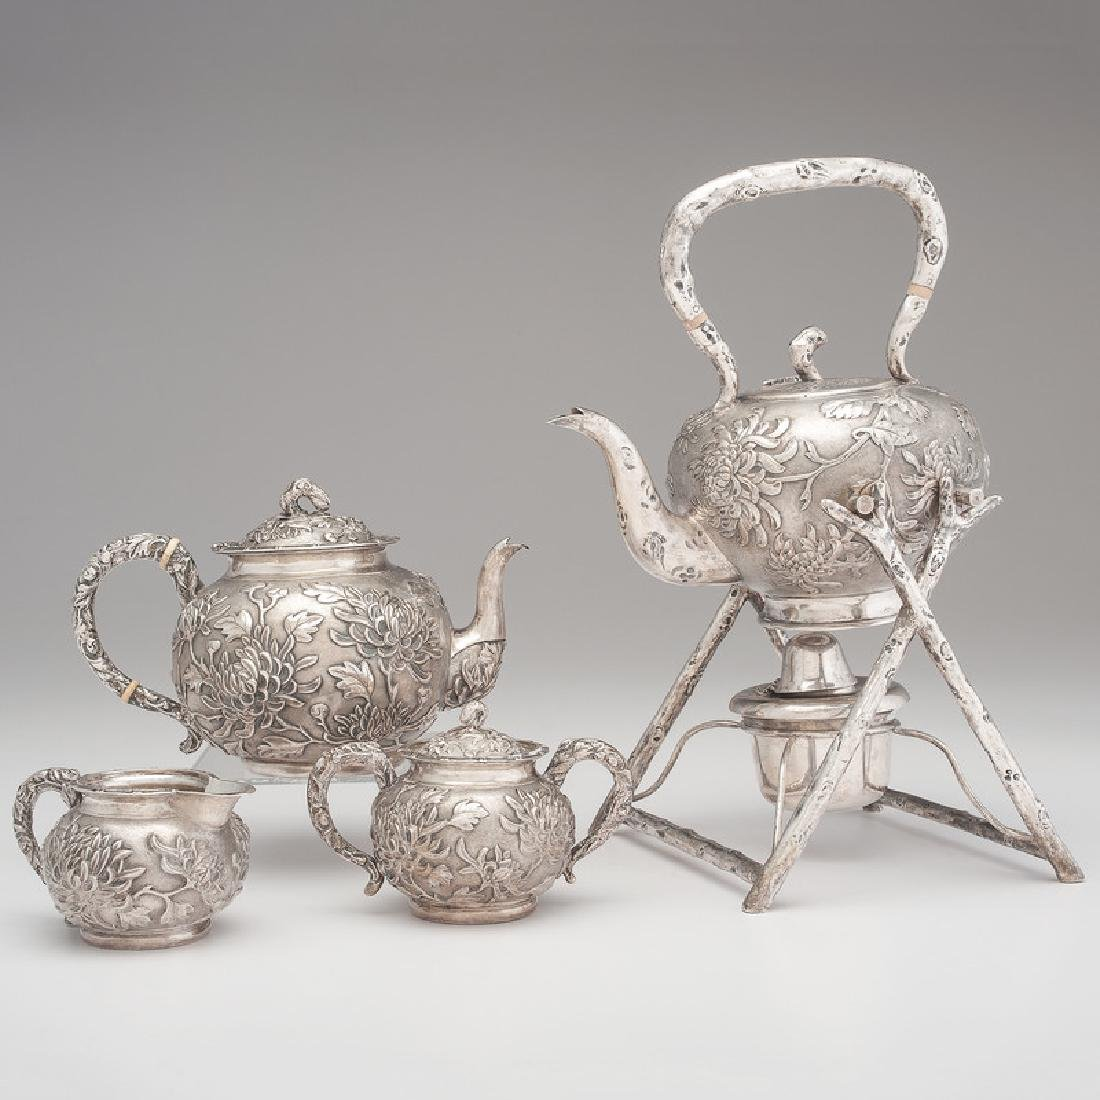 Chinese Export Silver Tea Service, Caddy and Shaker by